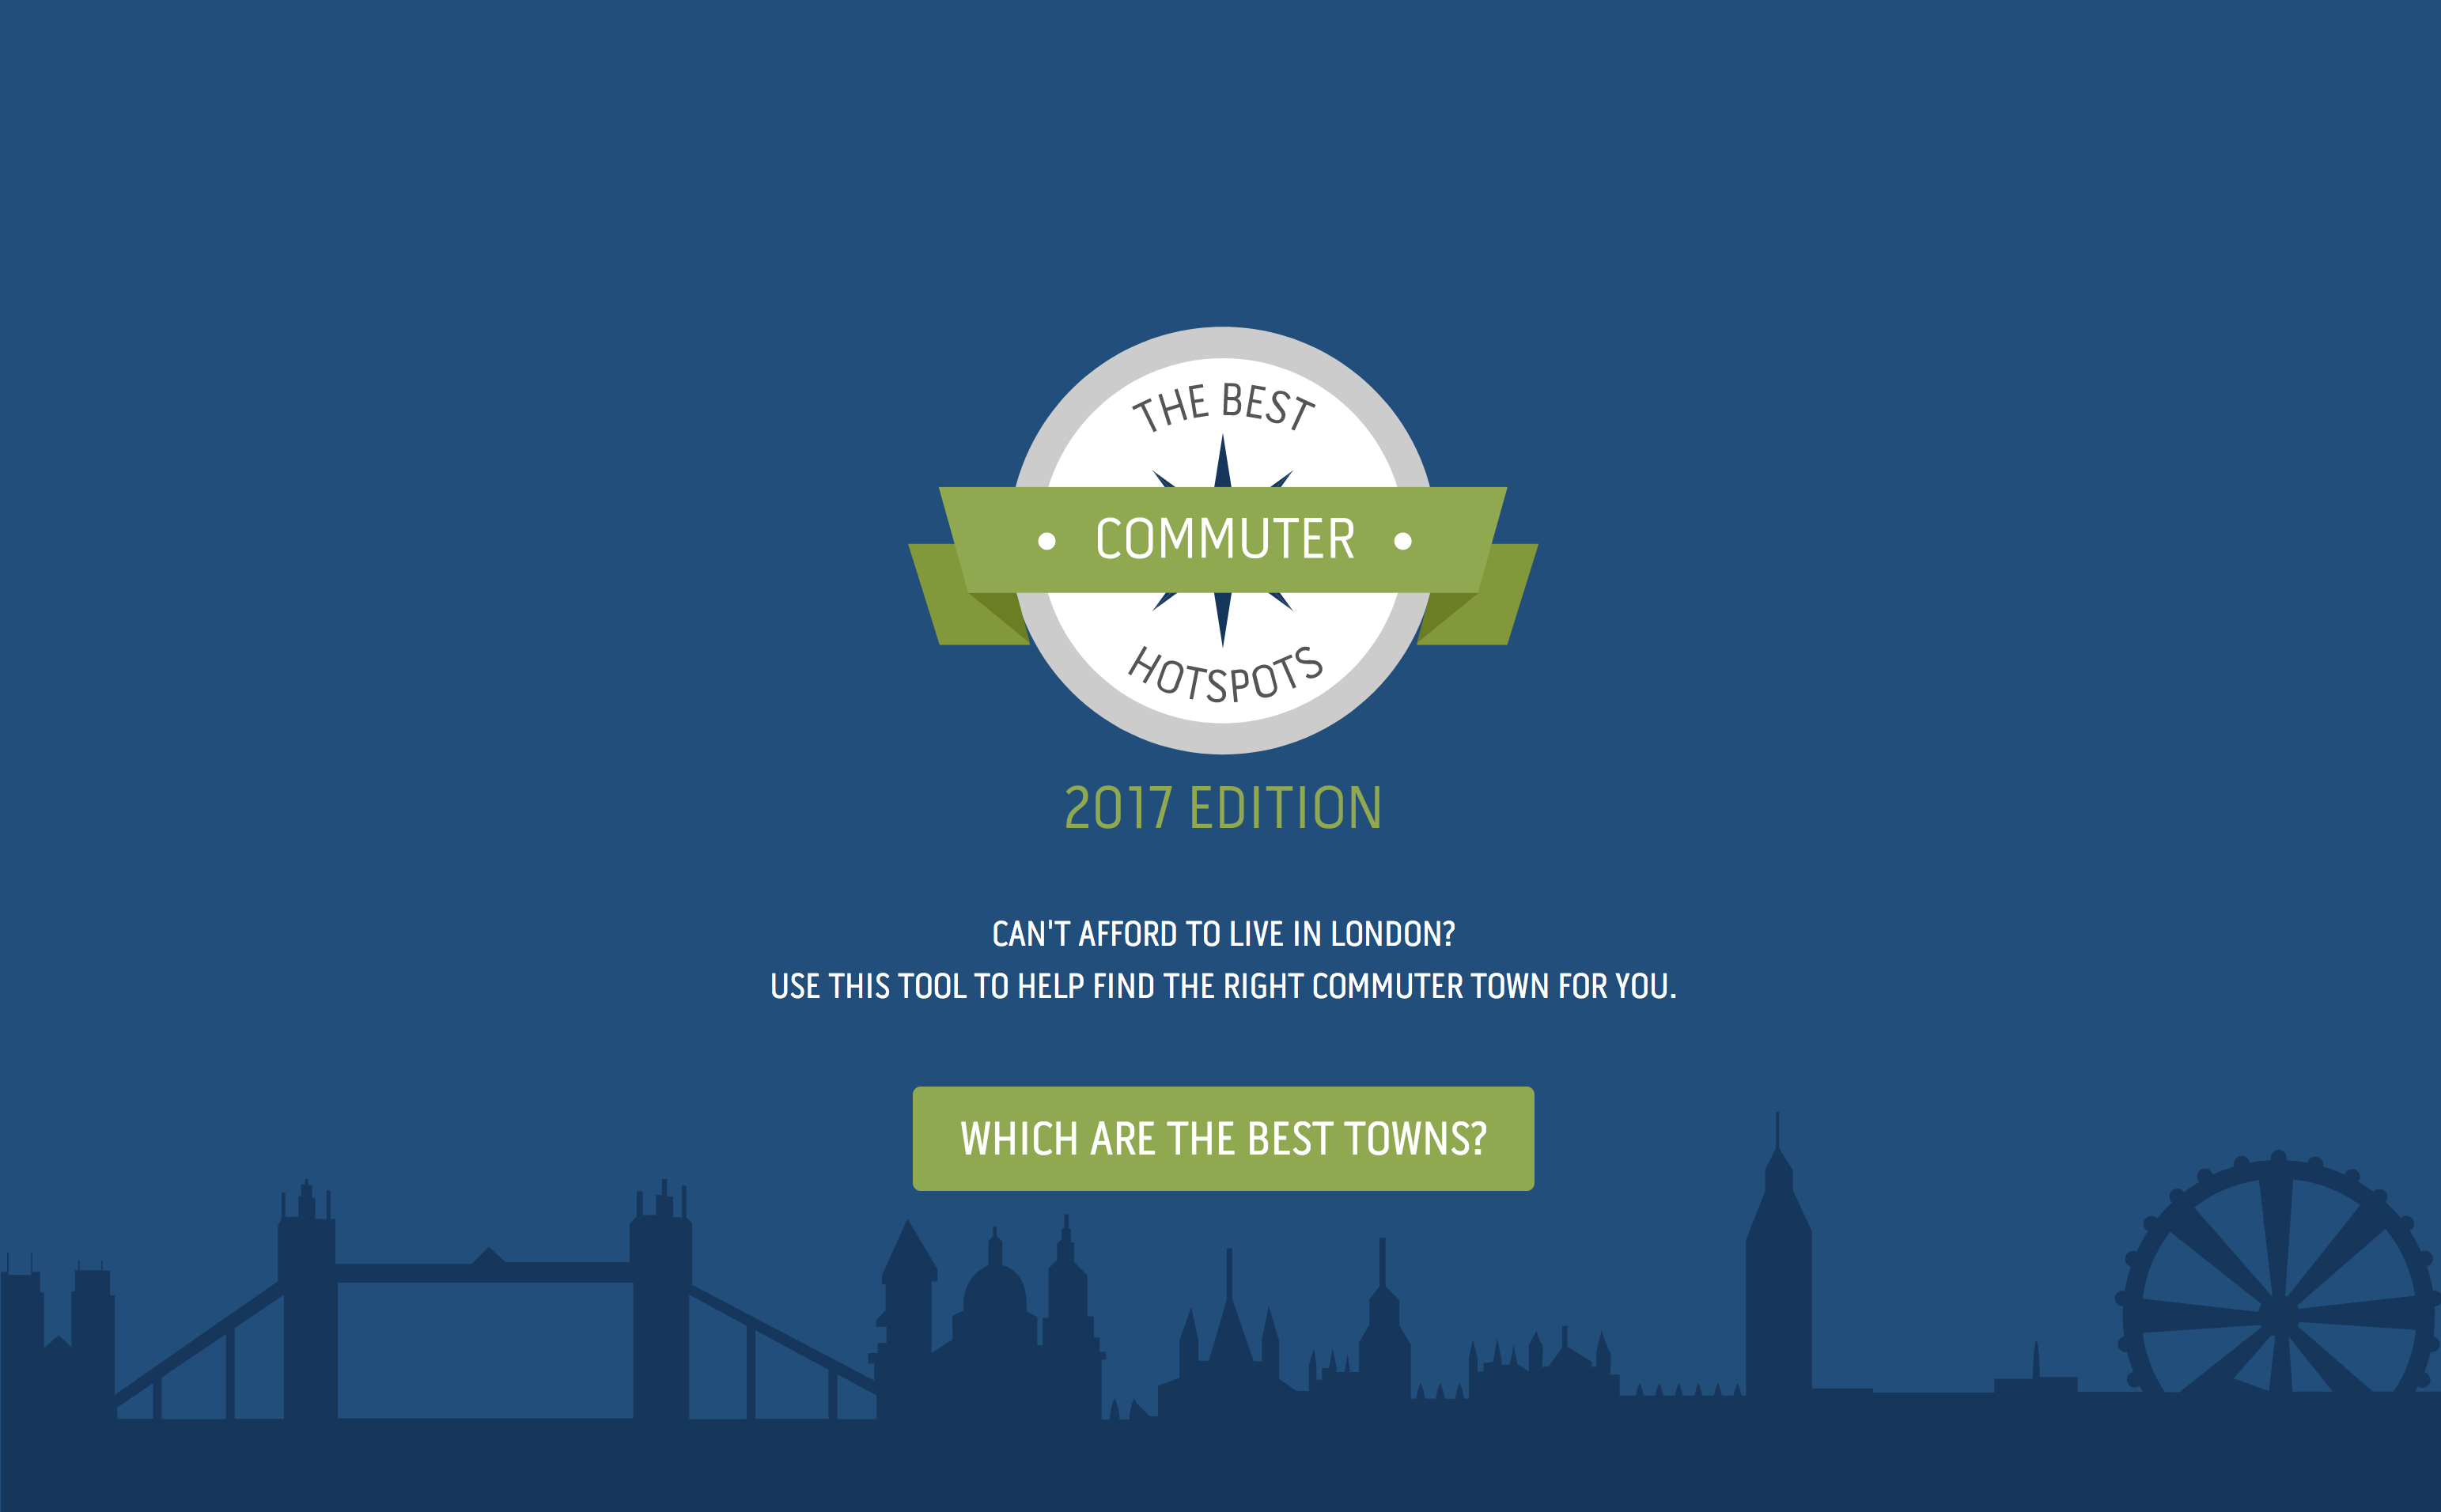 TotallyMoney.com - London's Best Commuter Hotspots